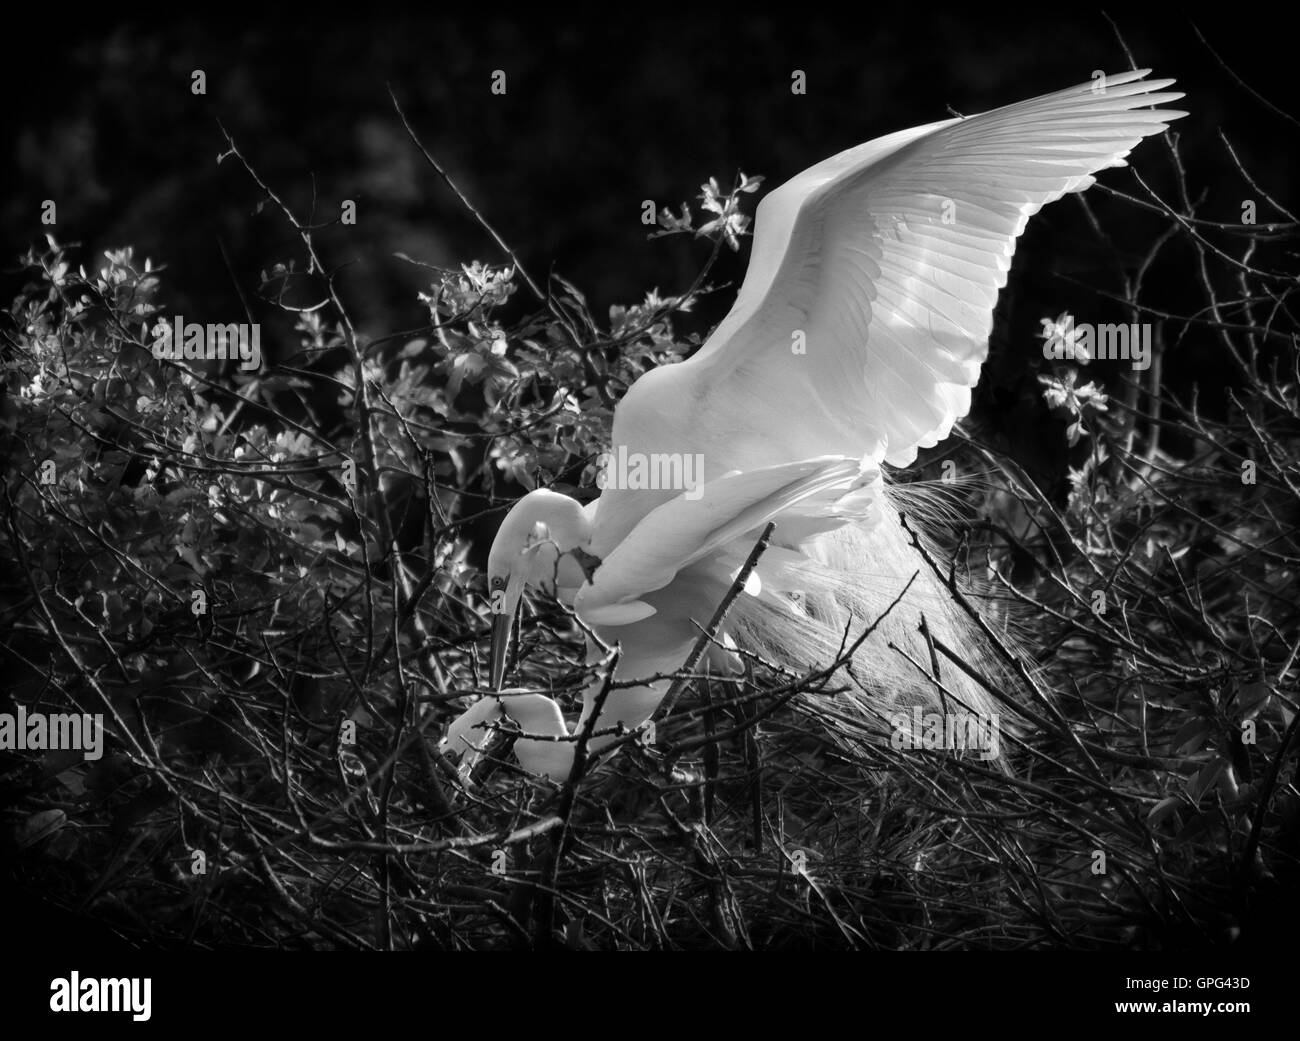 A pair of White Egrets look lovely 'doin' the wild thing' in this intimate BW view!  A blue egg will - Stock Image